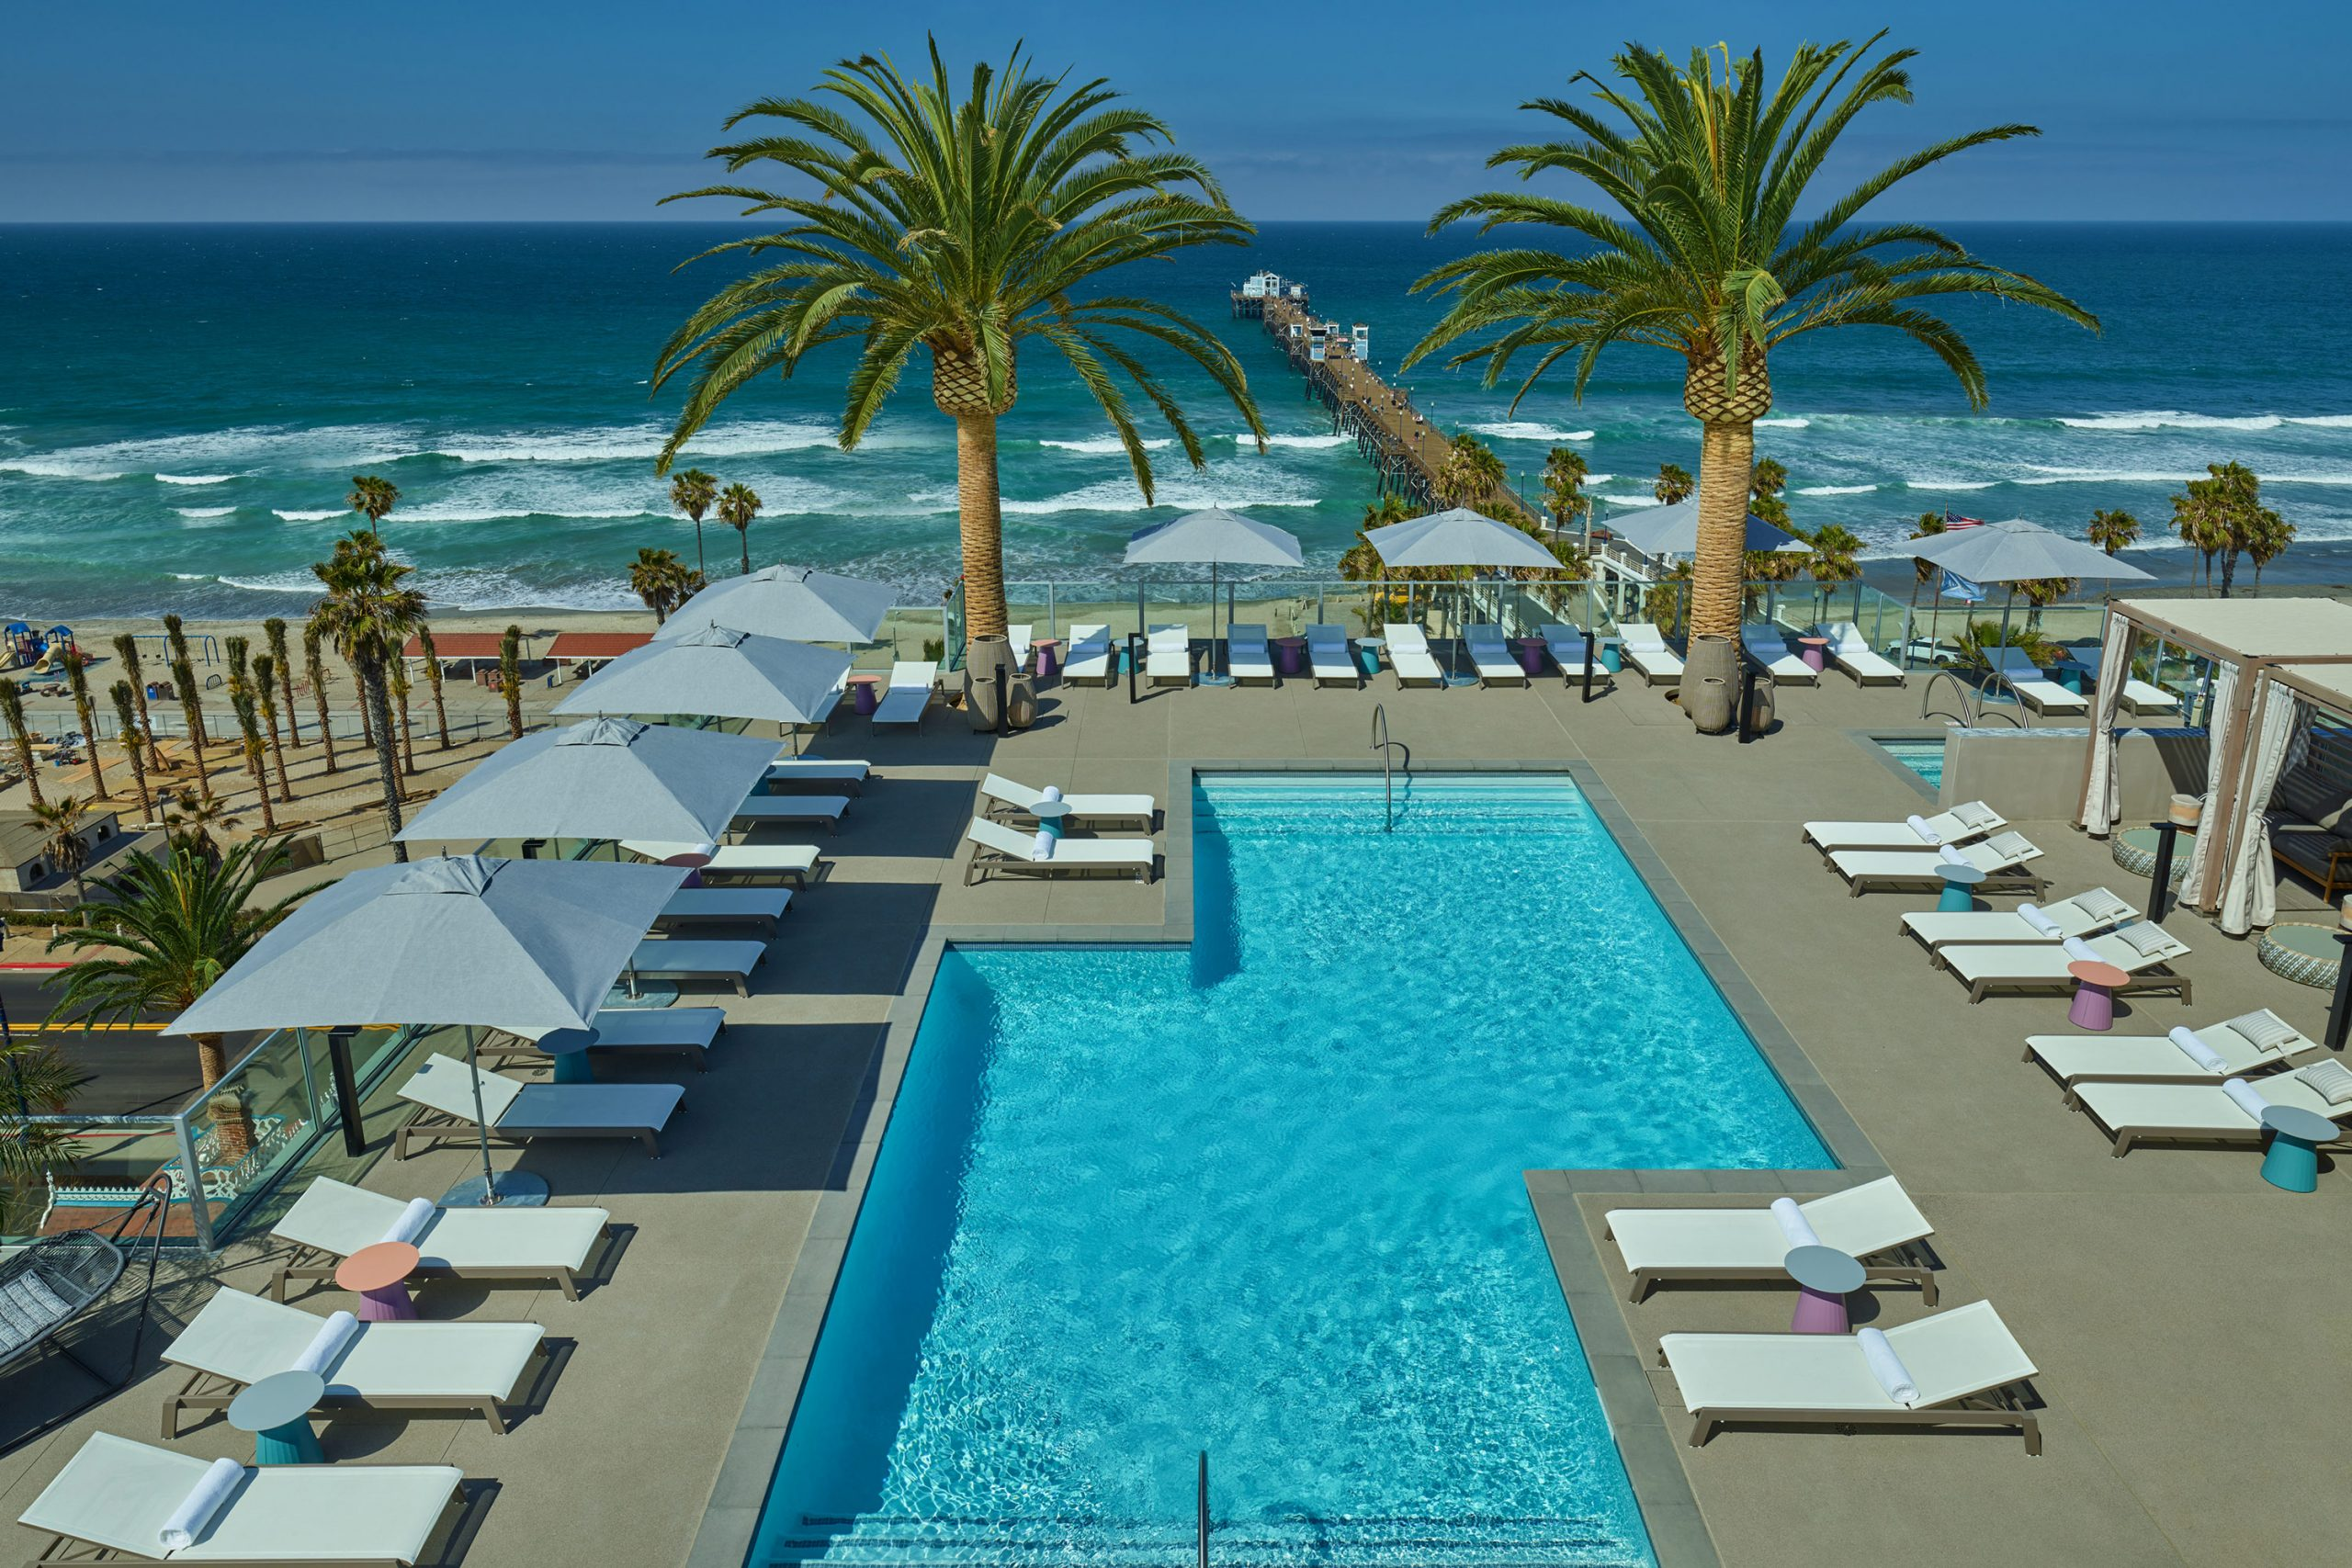 Mission Pacific Hotel pool